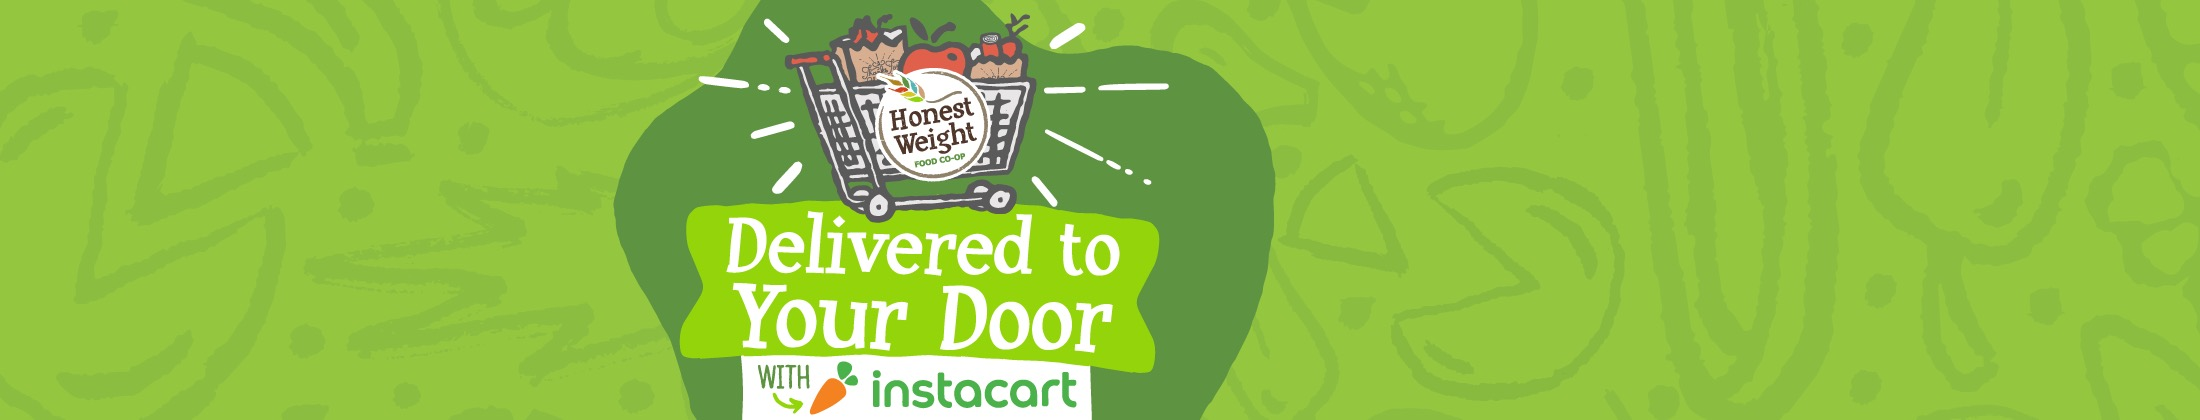 Honest Weight delivered to your door with Instacart